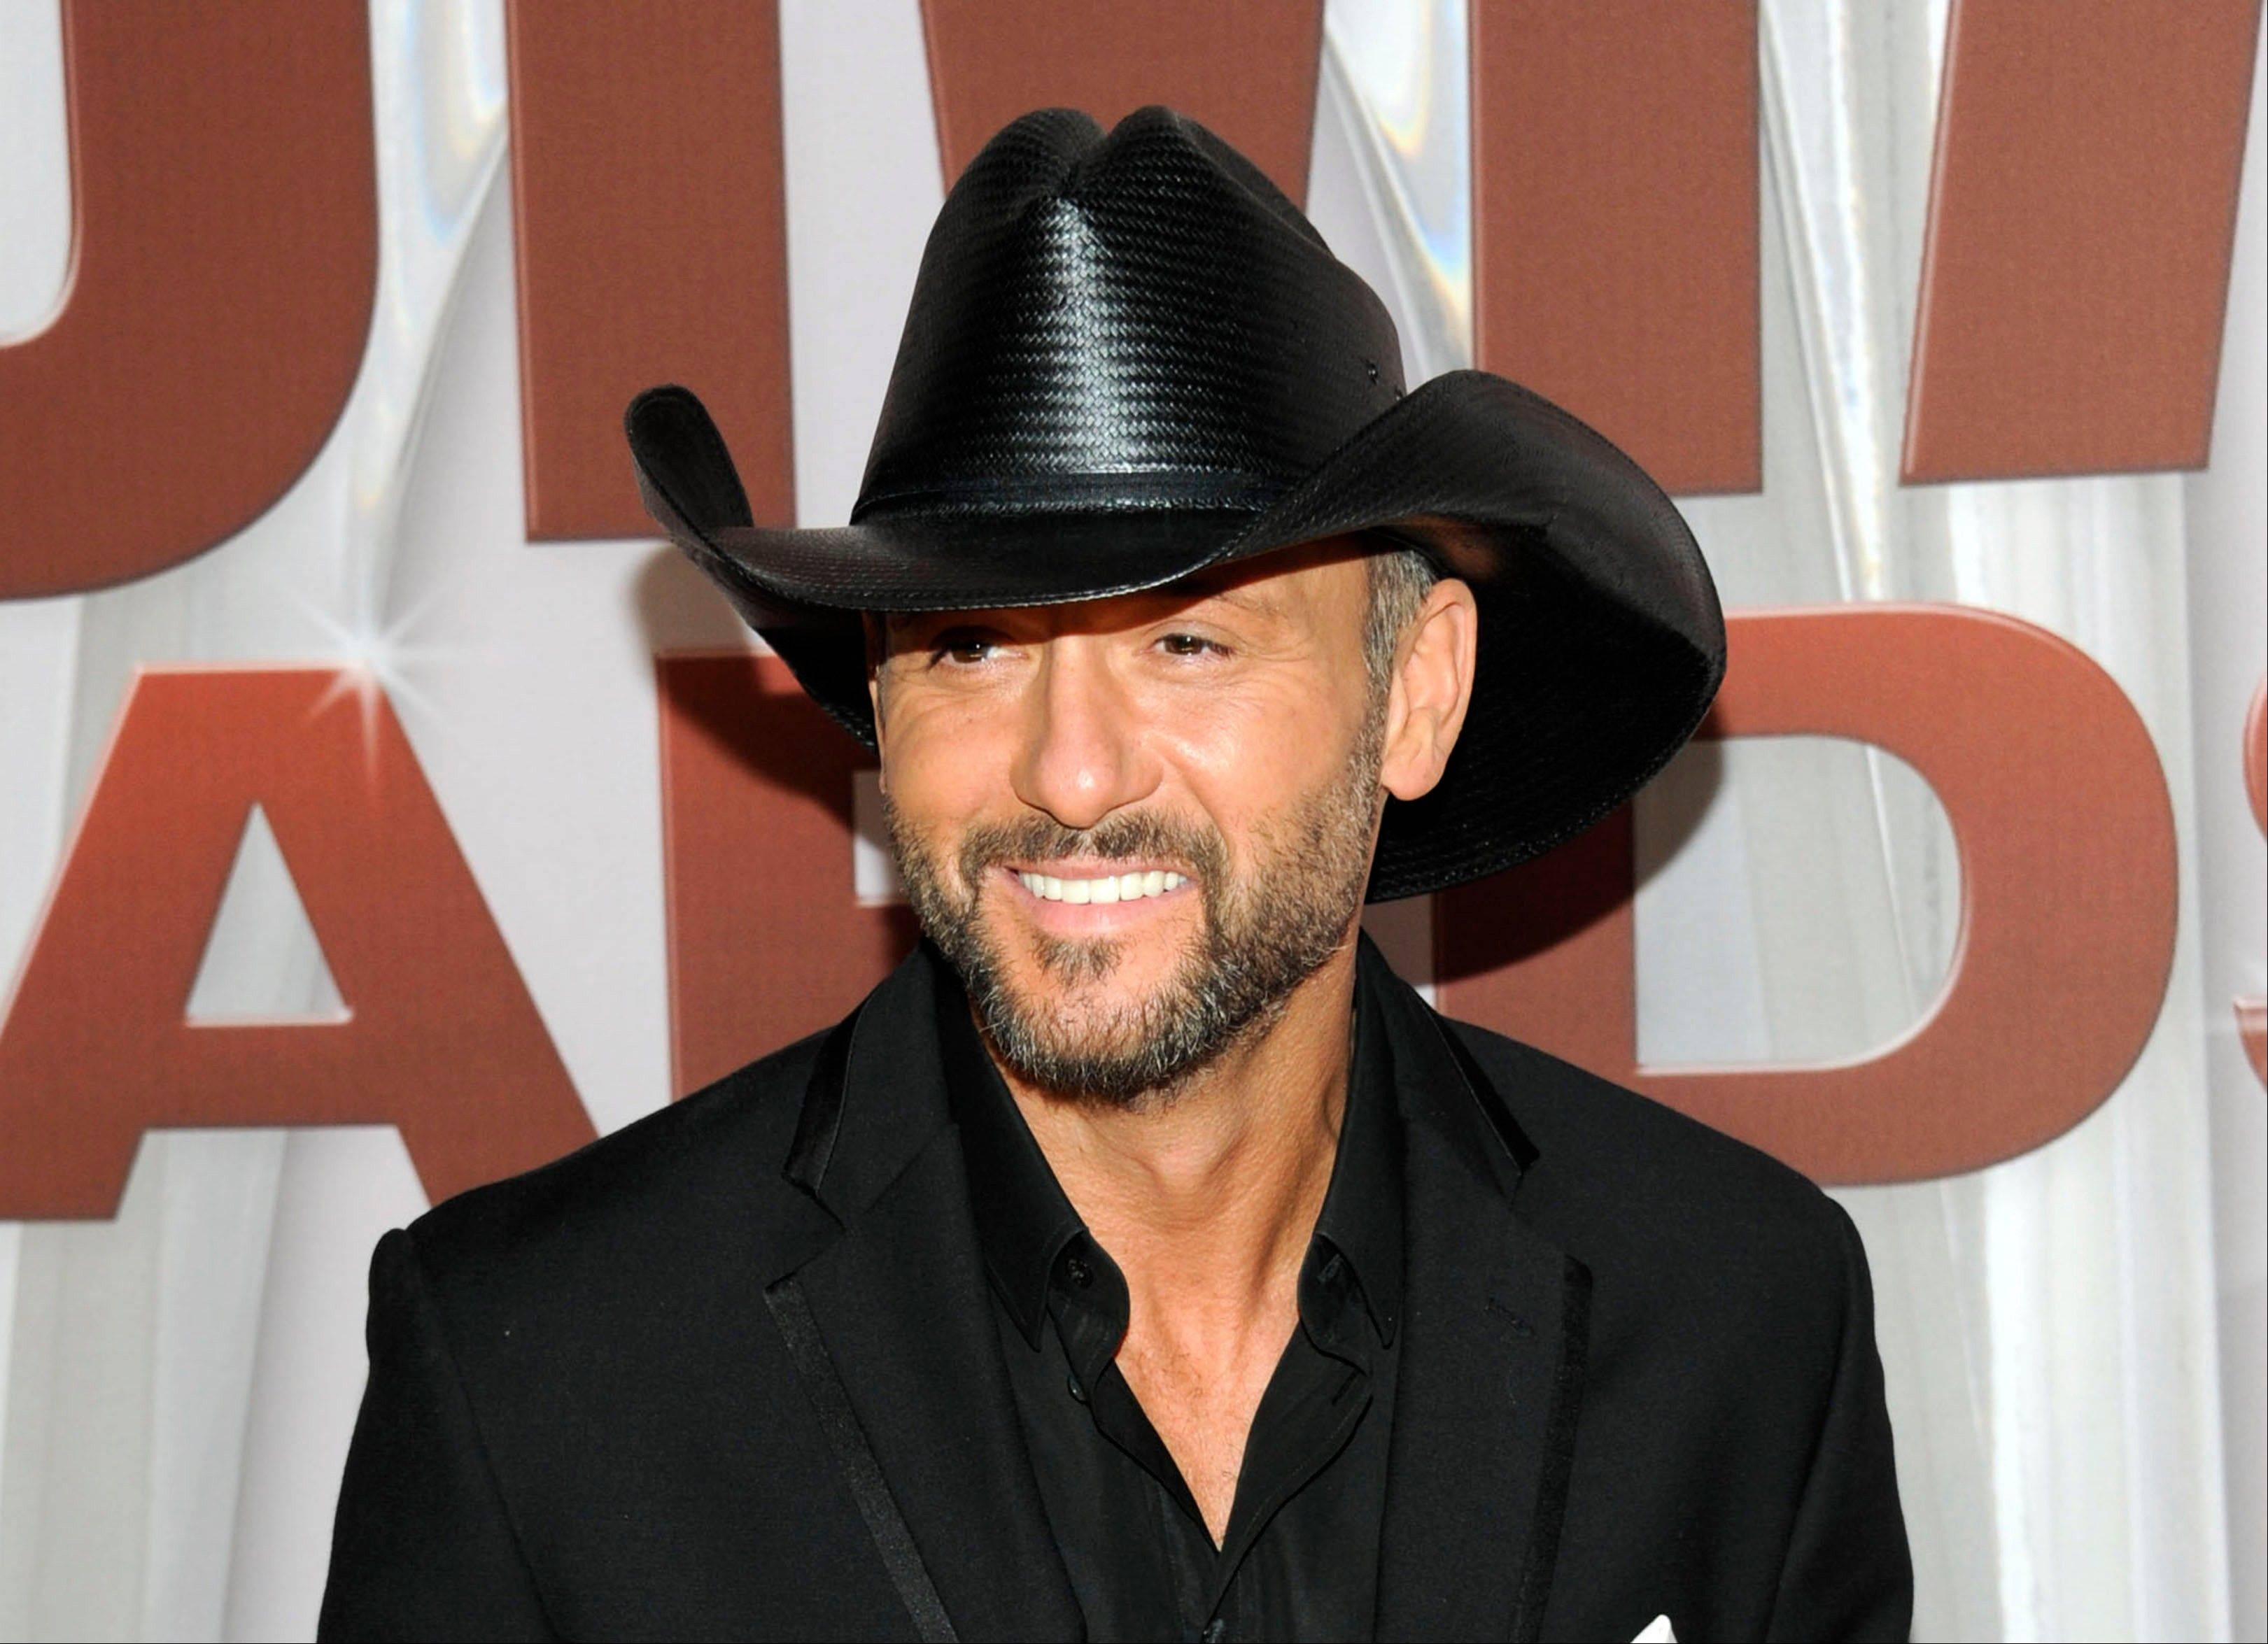 Tim McGraw and Miranda Lambert are the top nominees for this year�s Academy of Country Music Awards. Lambert and McGraw are up for seven awards apiece at the April 6 awards show.